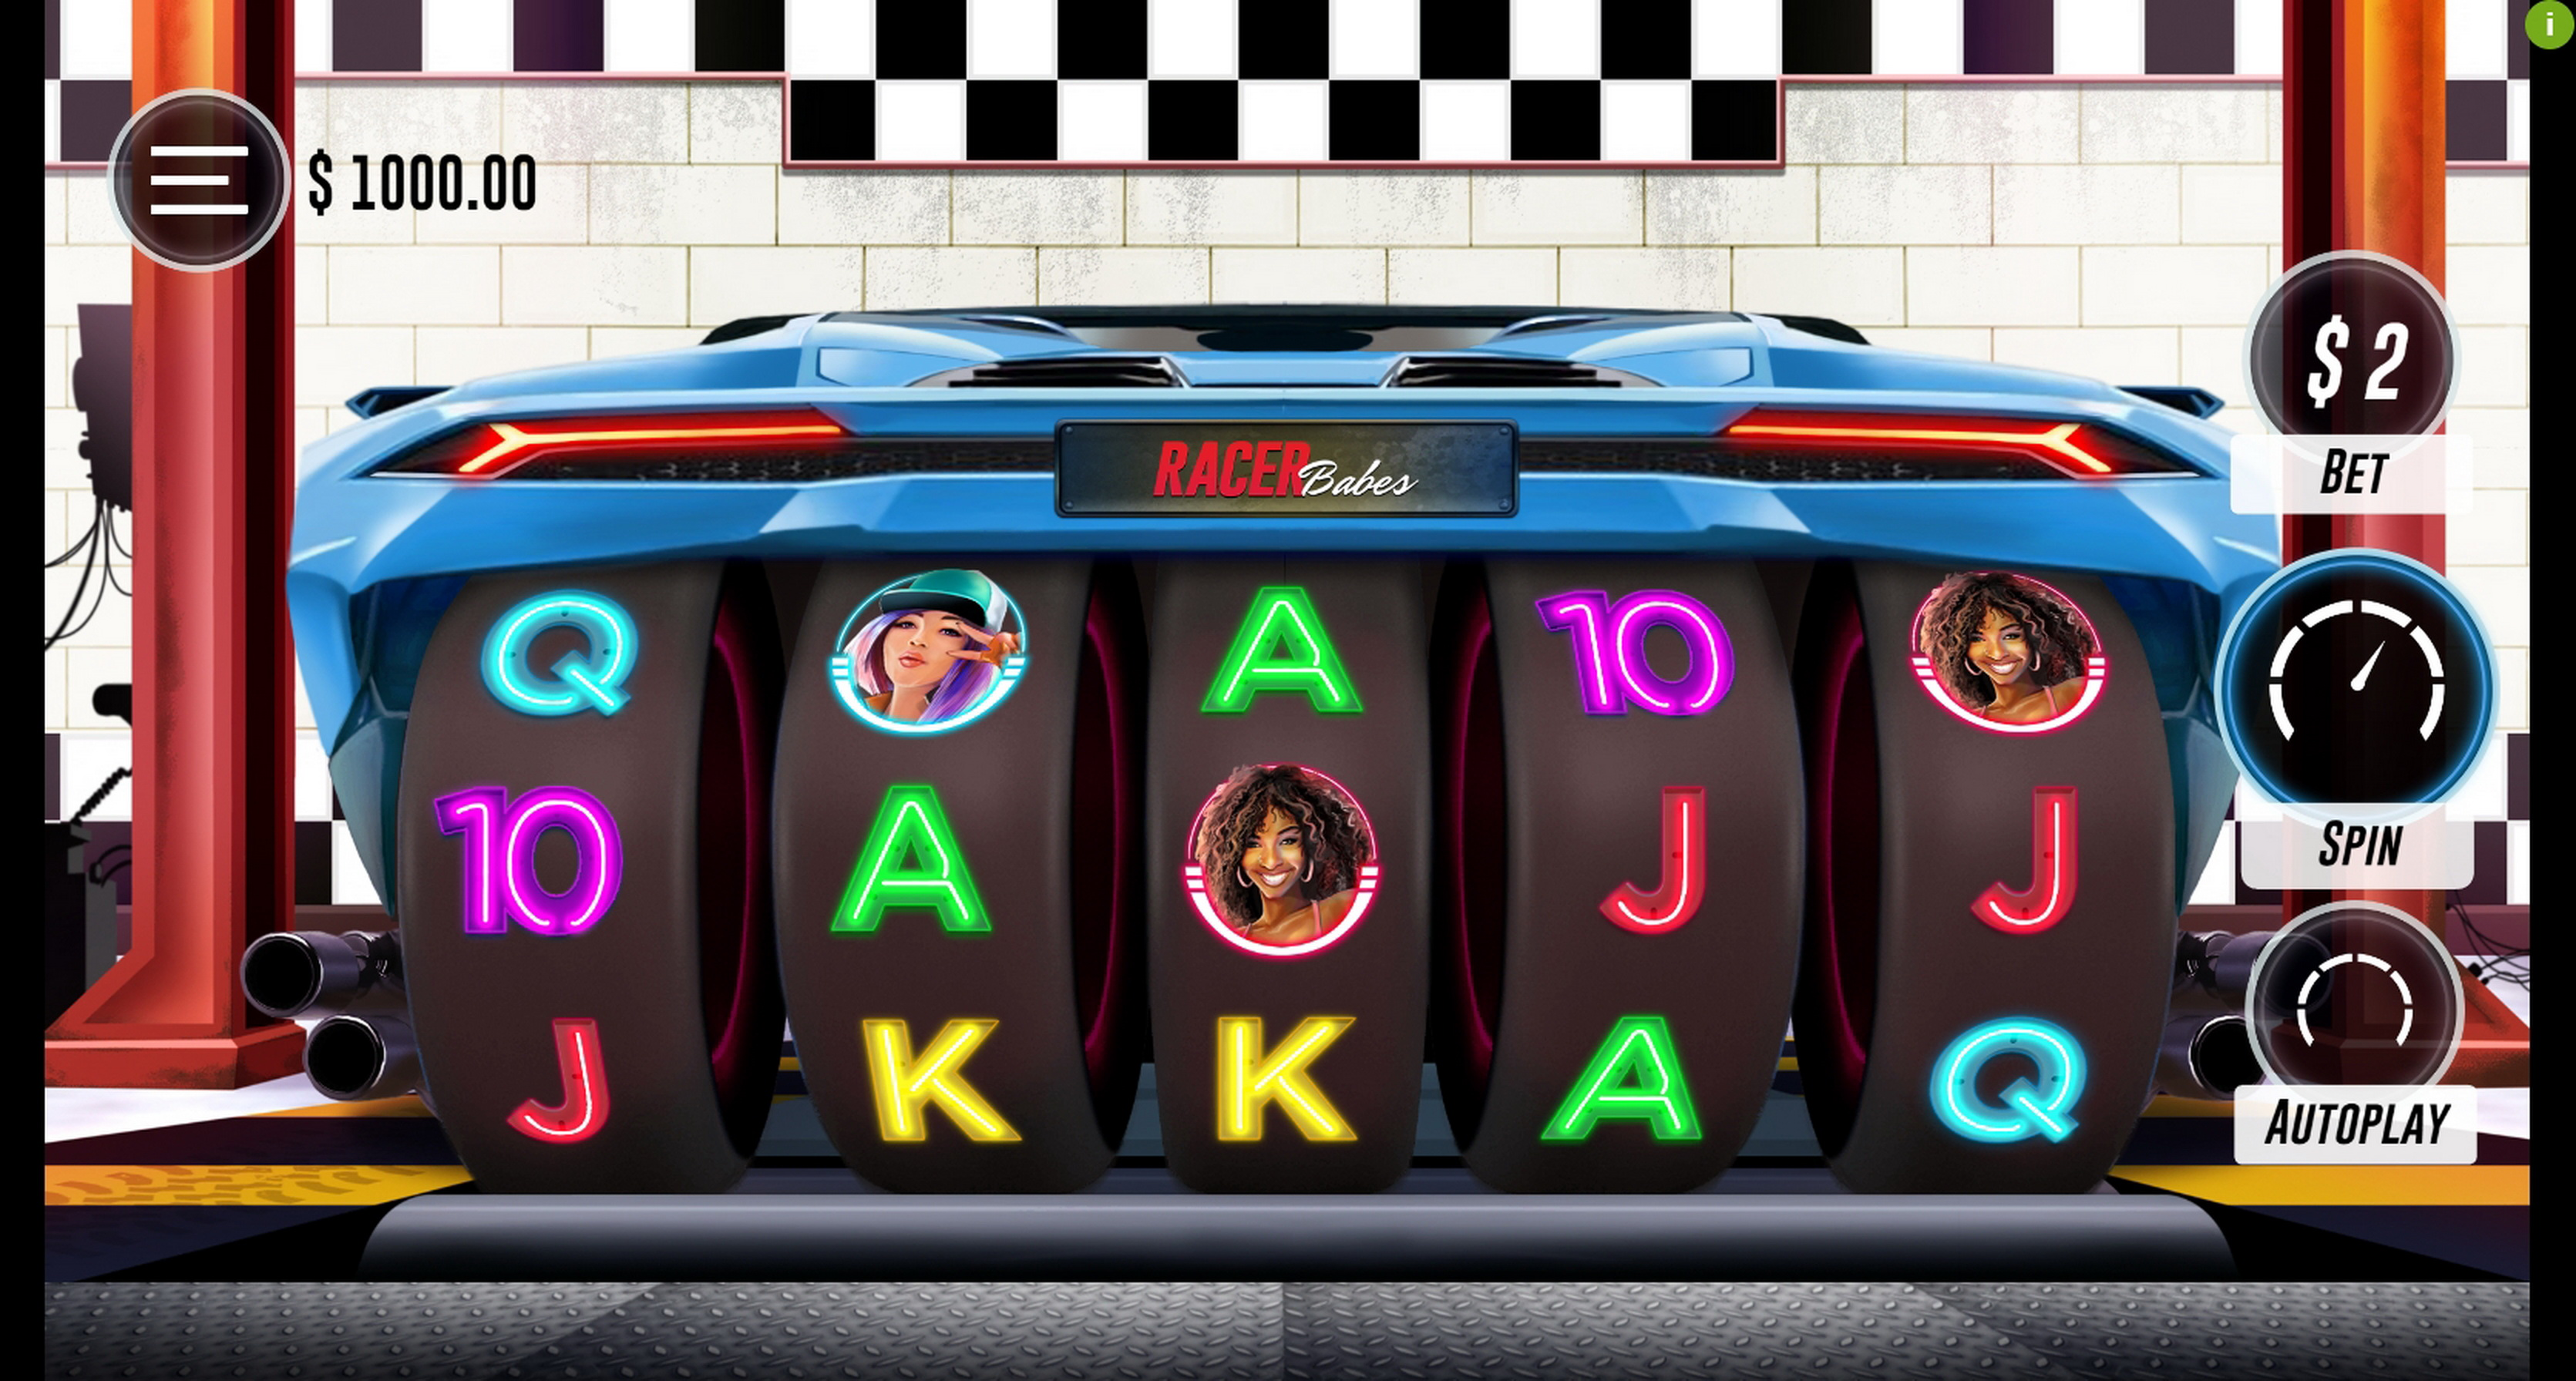 Reels in Racer Babes Slot Game by Woohoo